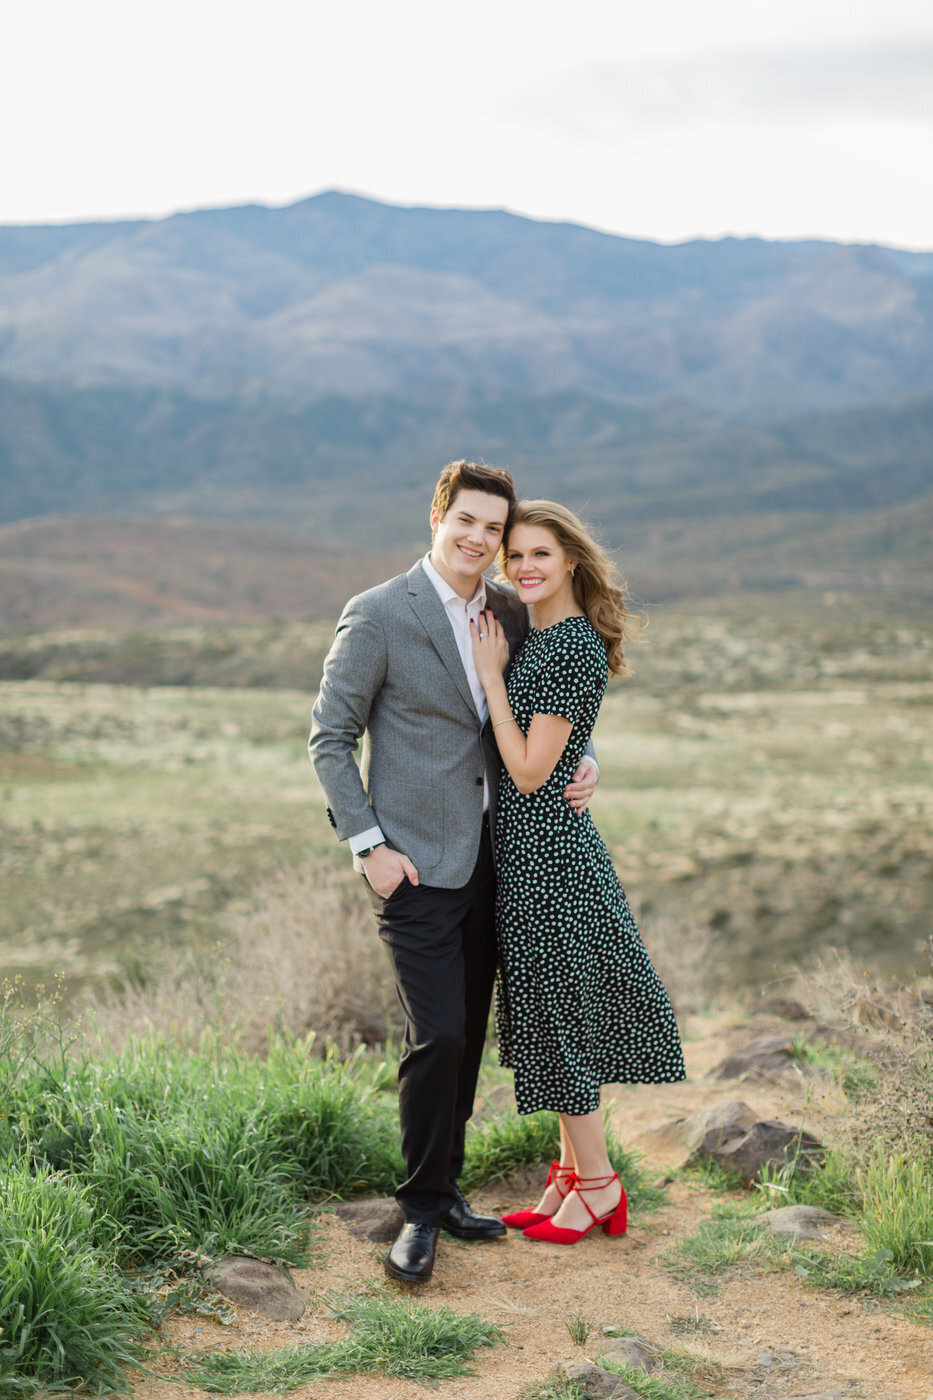 Arizona-wedding-photographer-engagement-16